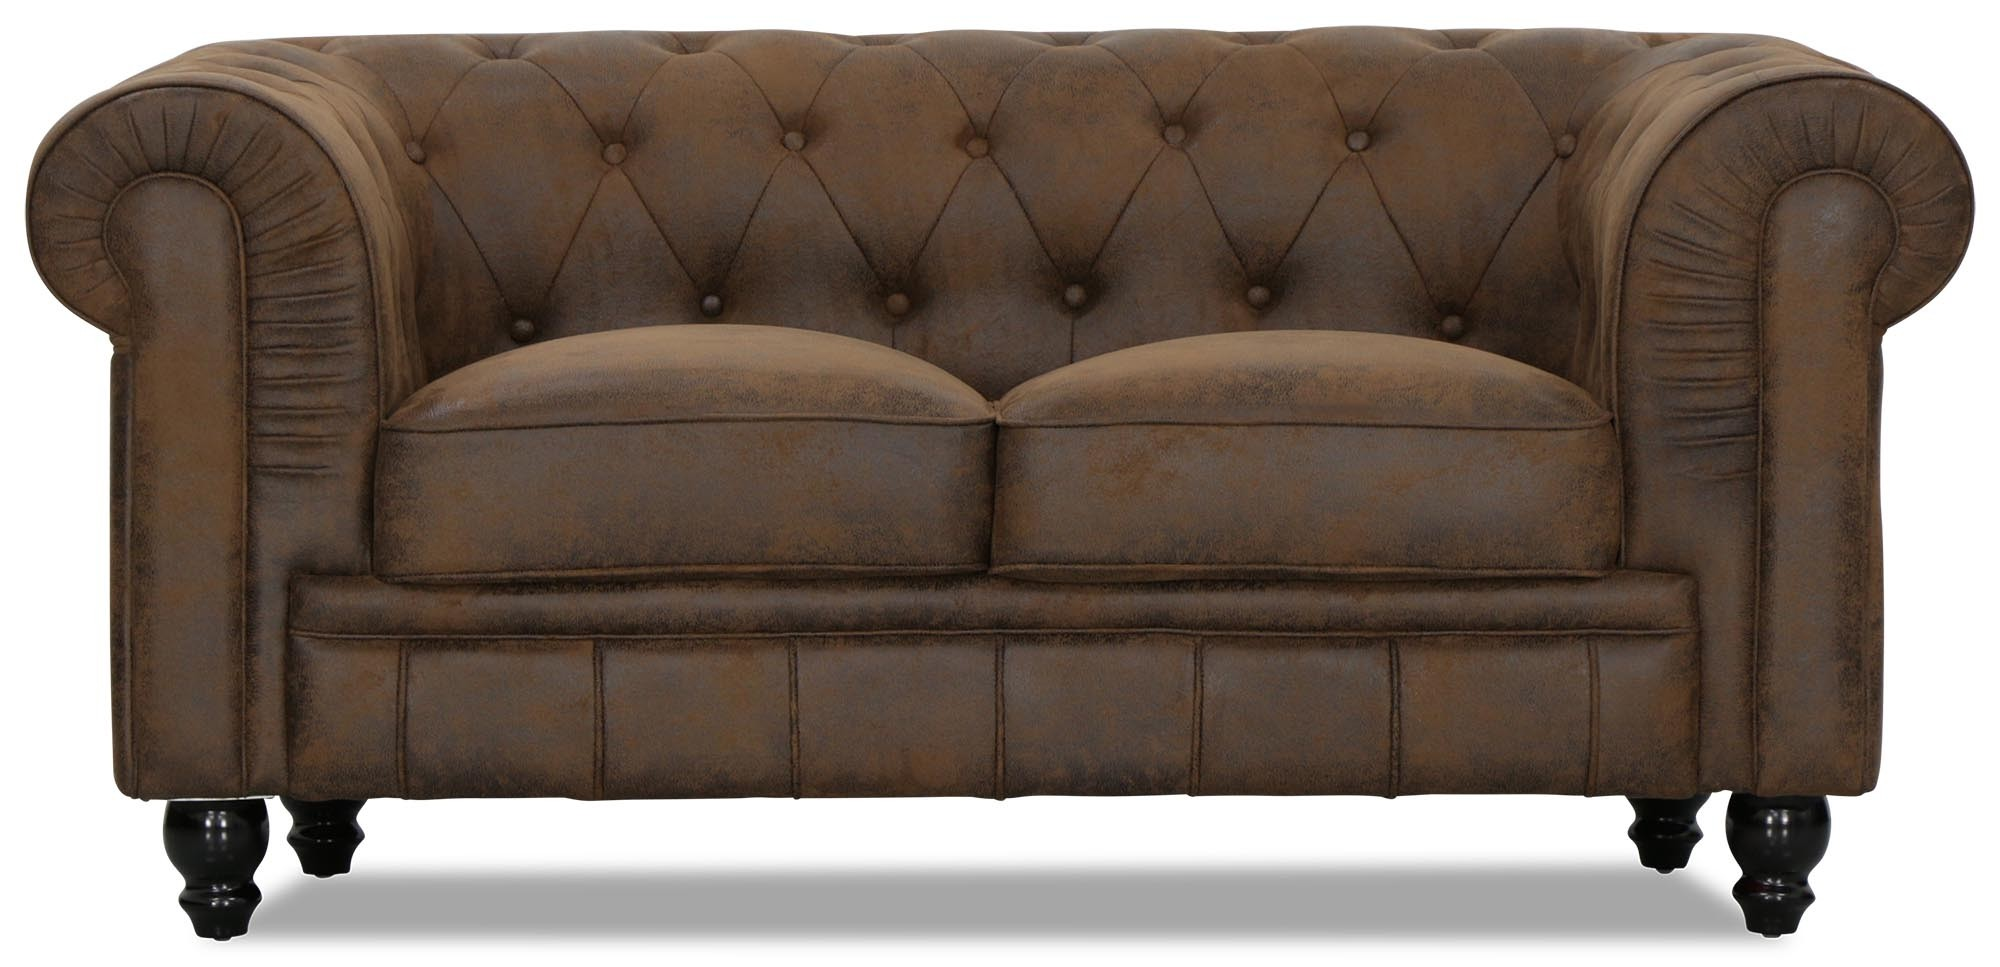 Bettsofa Vintage Benjamin Classical 2 Seater Vintage Pu Leather Sofa